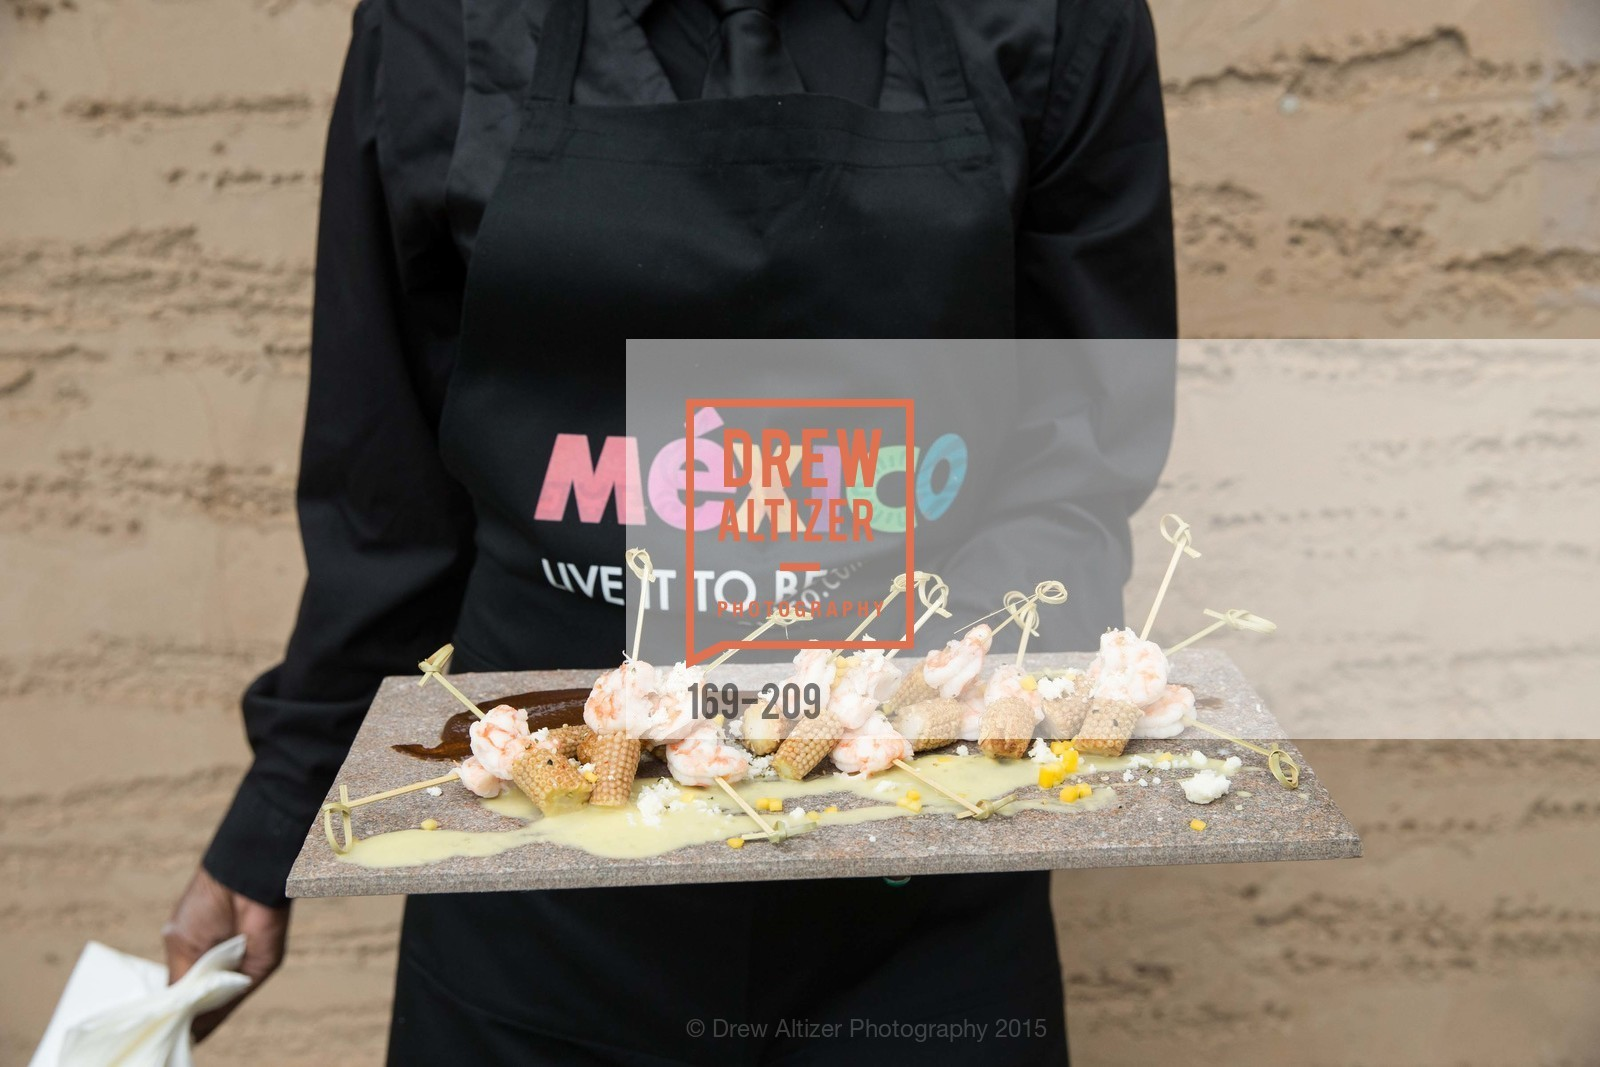 atmosphere, MEX I AM: 2015 Gala, July 22nd, 2015, Photo,Drew Altizer, Drew Altizer Photography, full-service event agency, private events, San Francisco photographer, photographer California